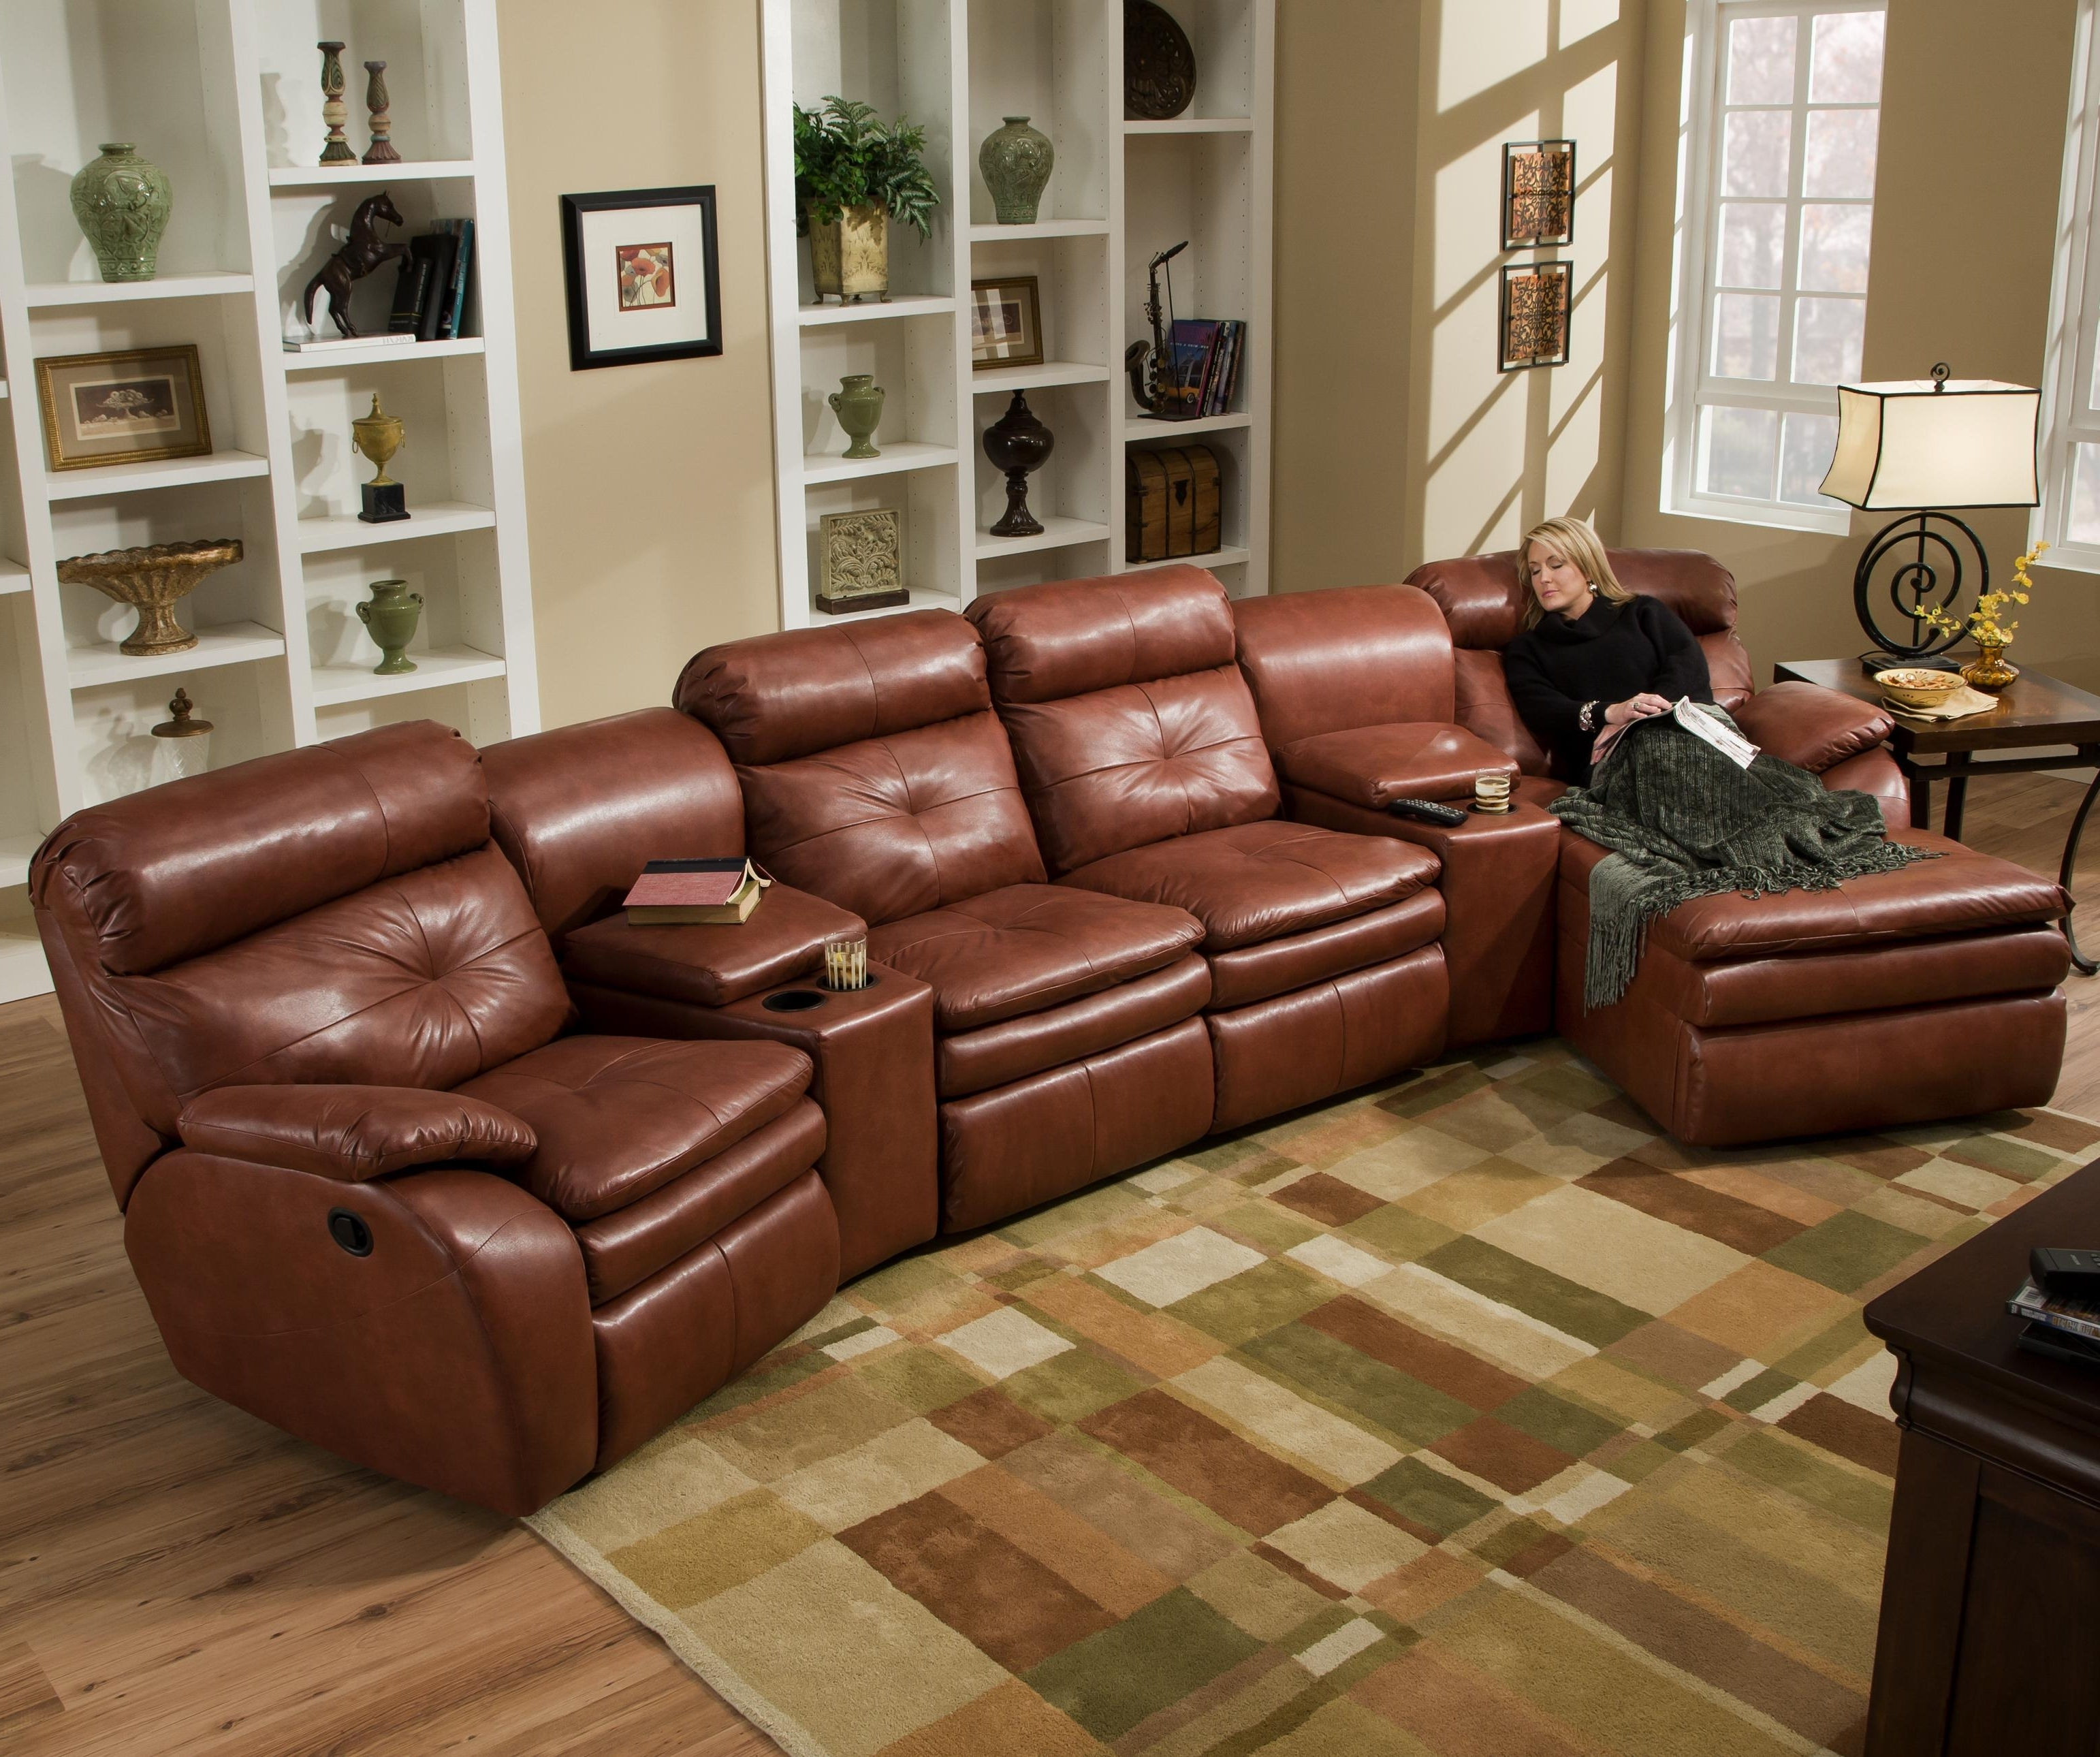 Most Current Chaise Recliners In Loveseat Sectional With Chaise Apartment Size Sofa Dimensions Lazy (View 12 of 15)